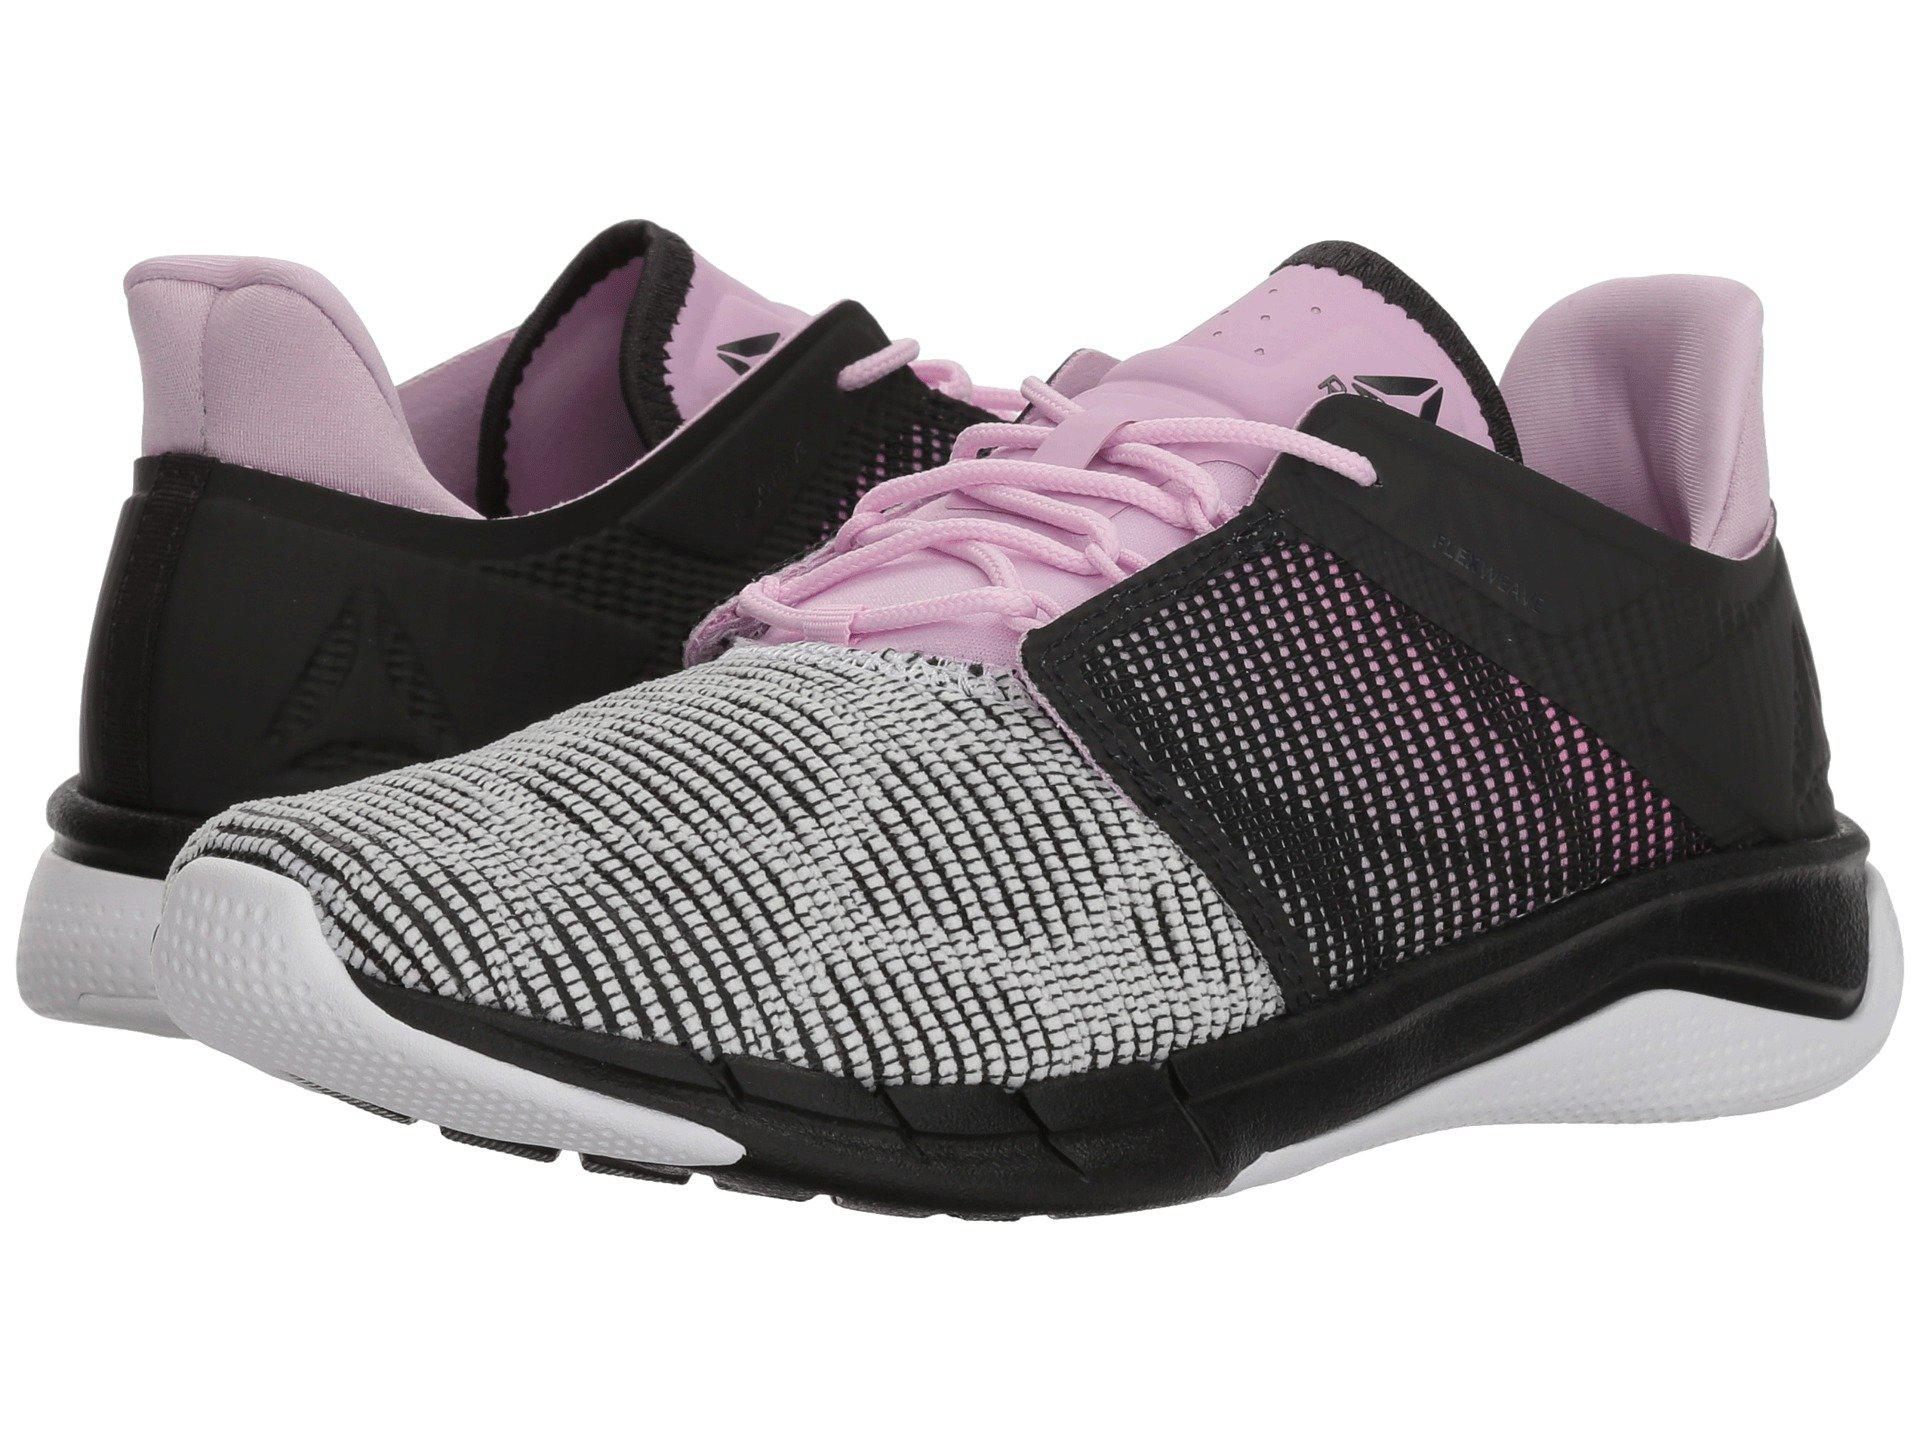 95fd93d1d81 Lyst - Reebok Flexweave Run - Save 29%